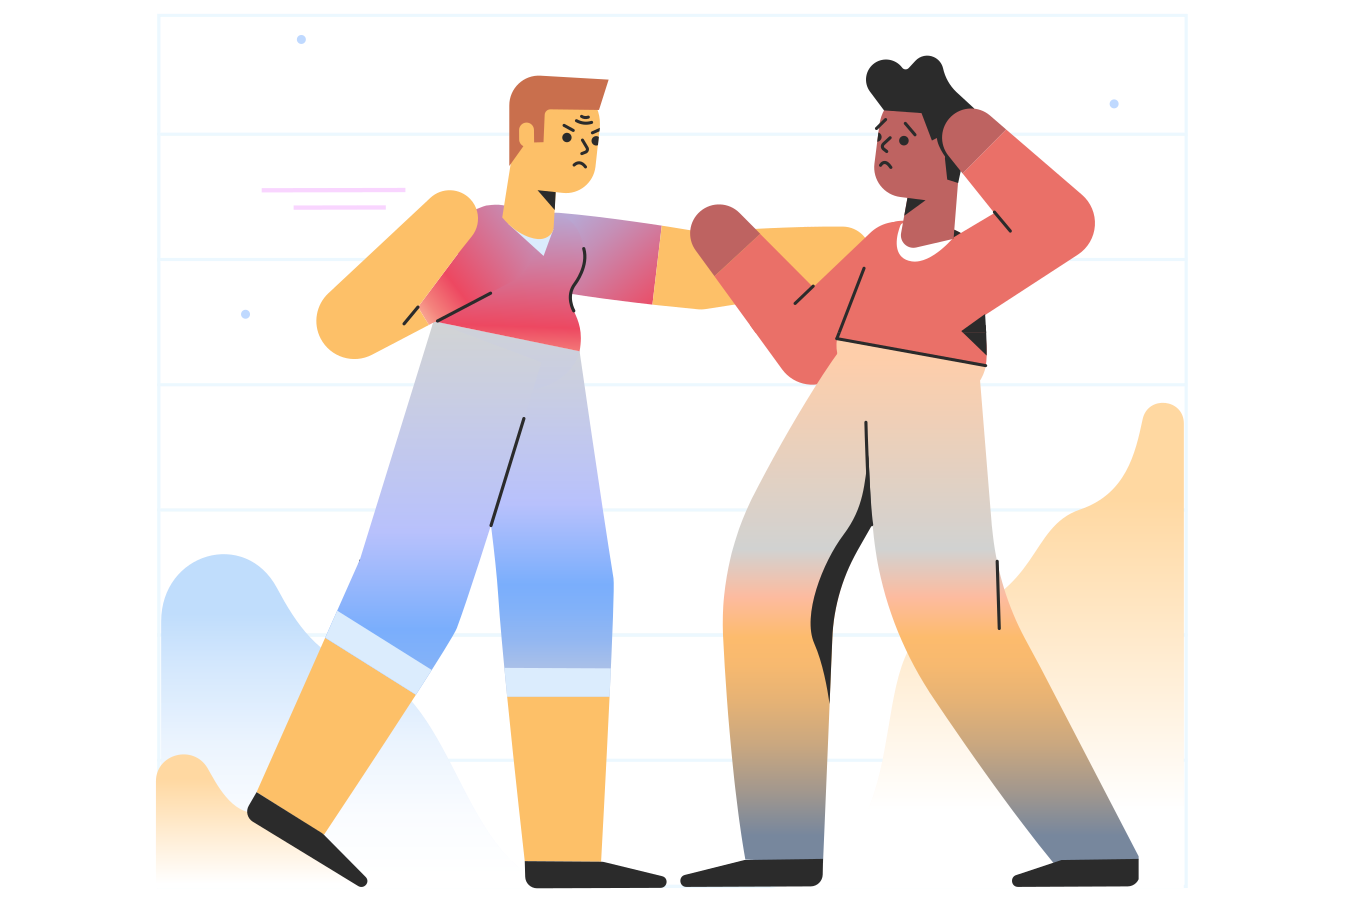 Fighting Clipart illustration in PNG, SVG